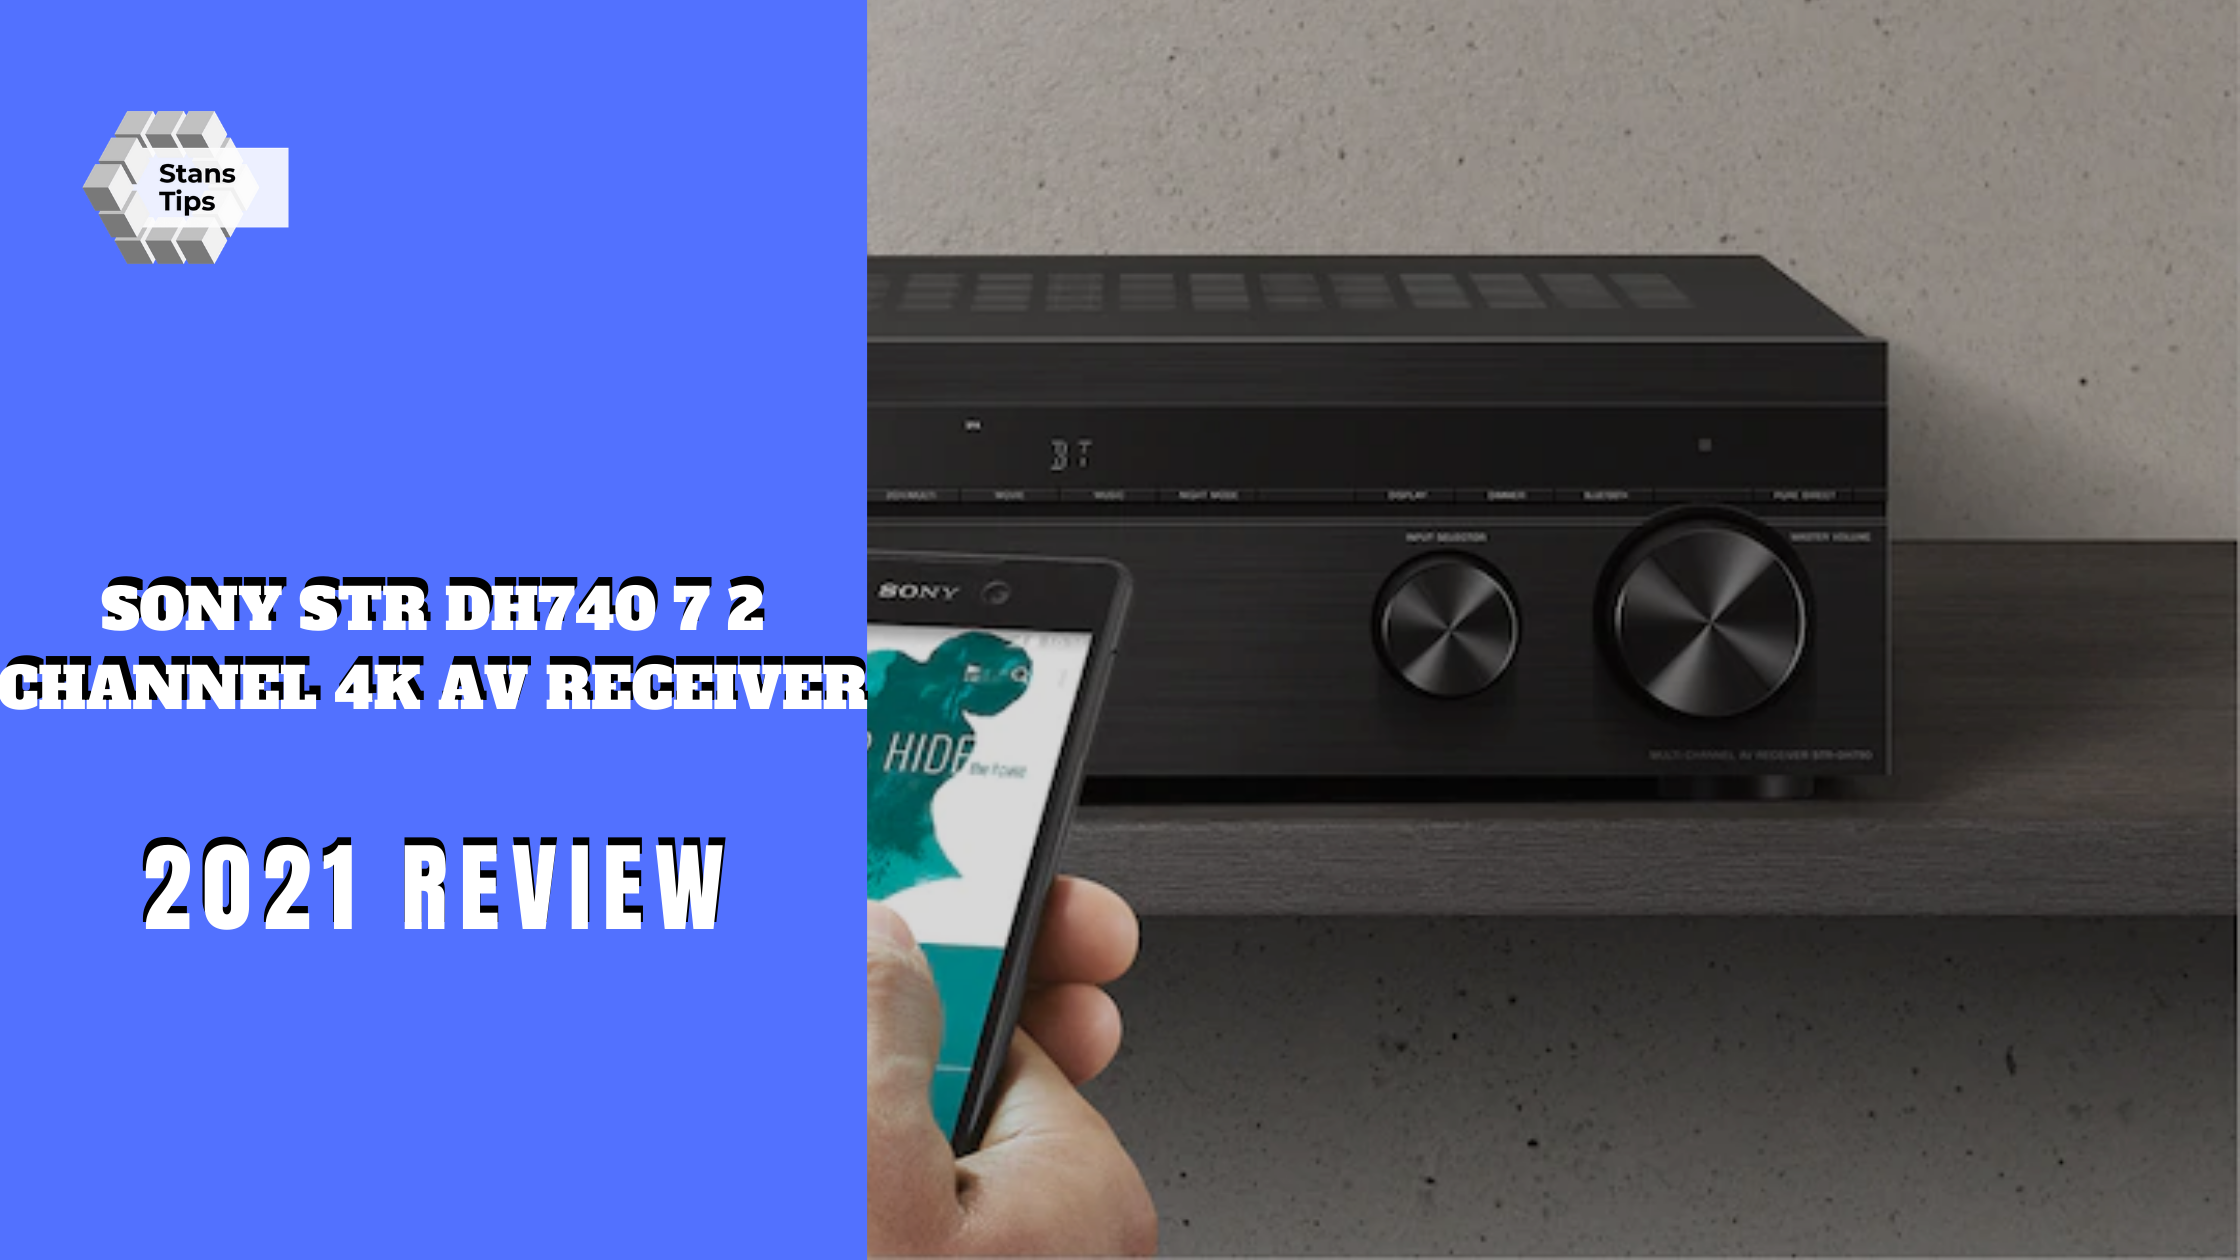 Sony str dh740 7 2 channel 4k av receiver review